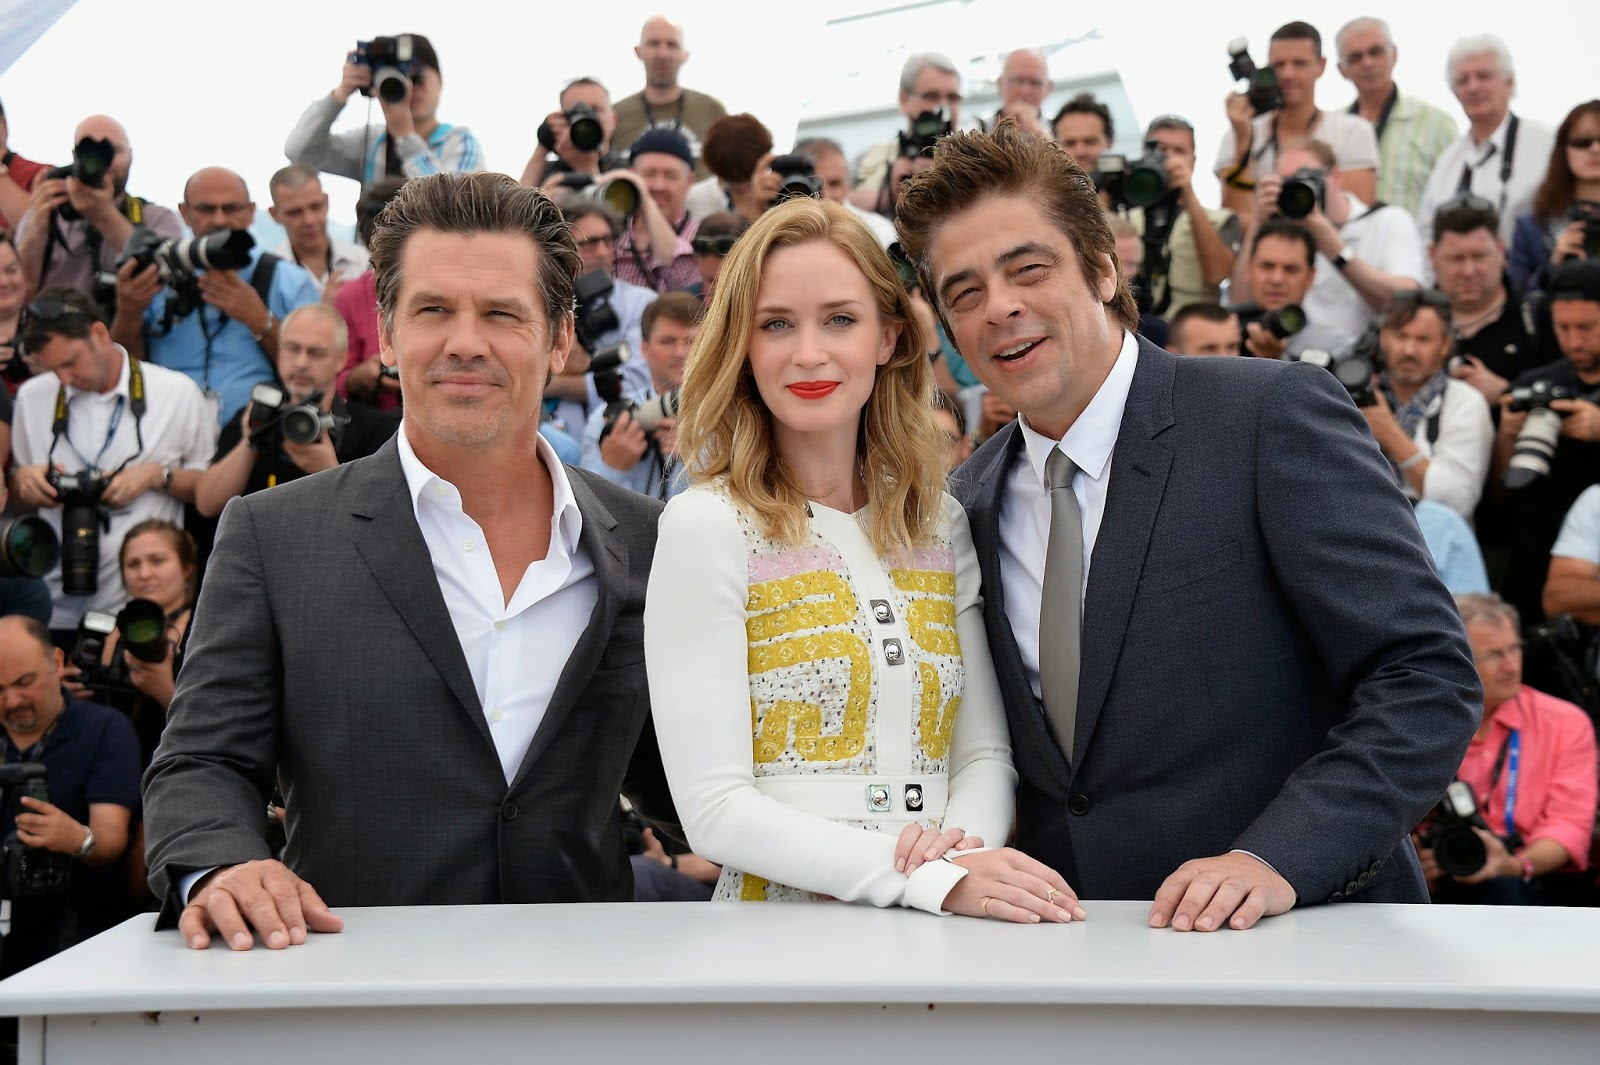 Sicario Cast Photos At Cannes2015 Sandwichjohnfilms Scott was born melody ann thomas in los angeles, california. sandwichjohnfilms com